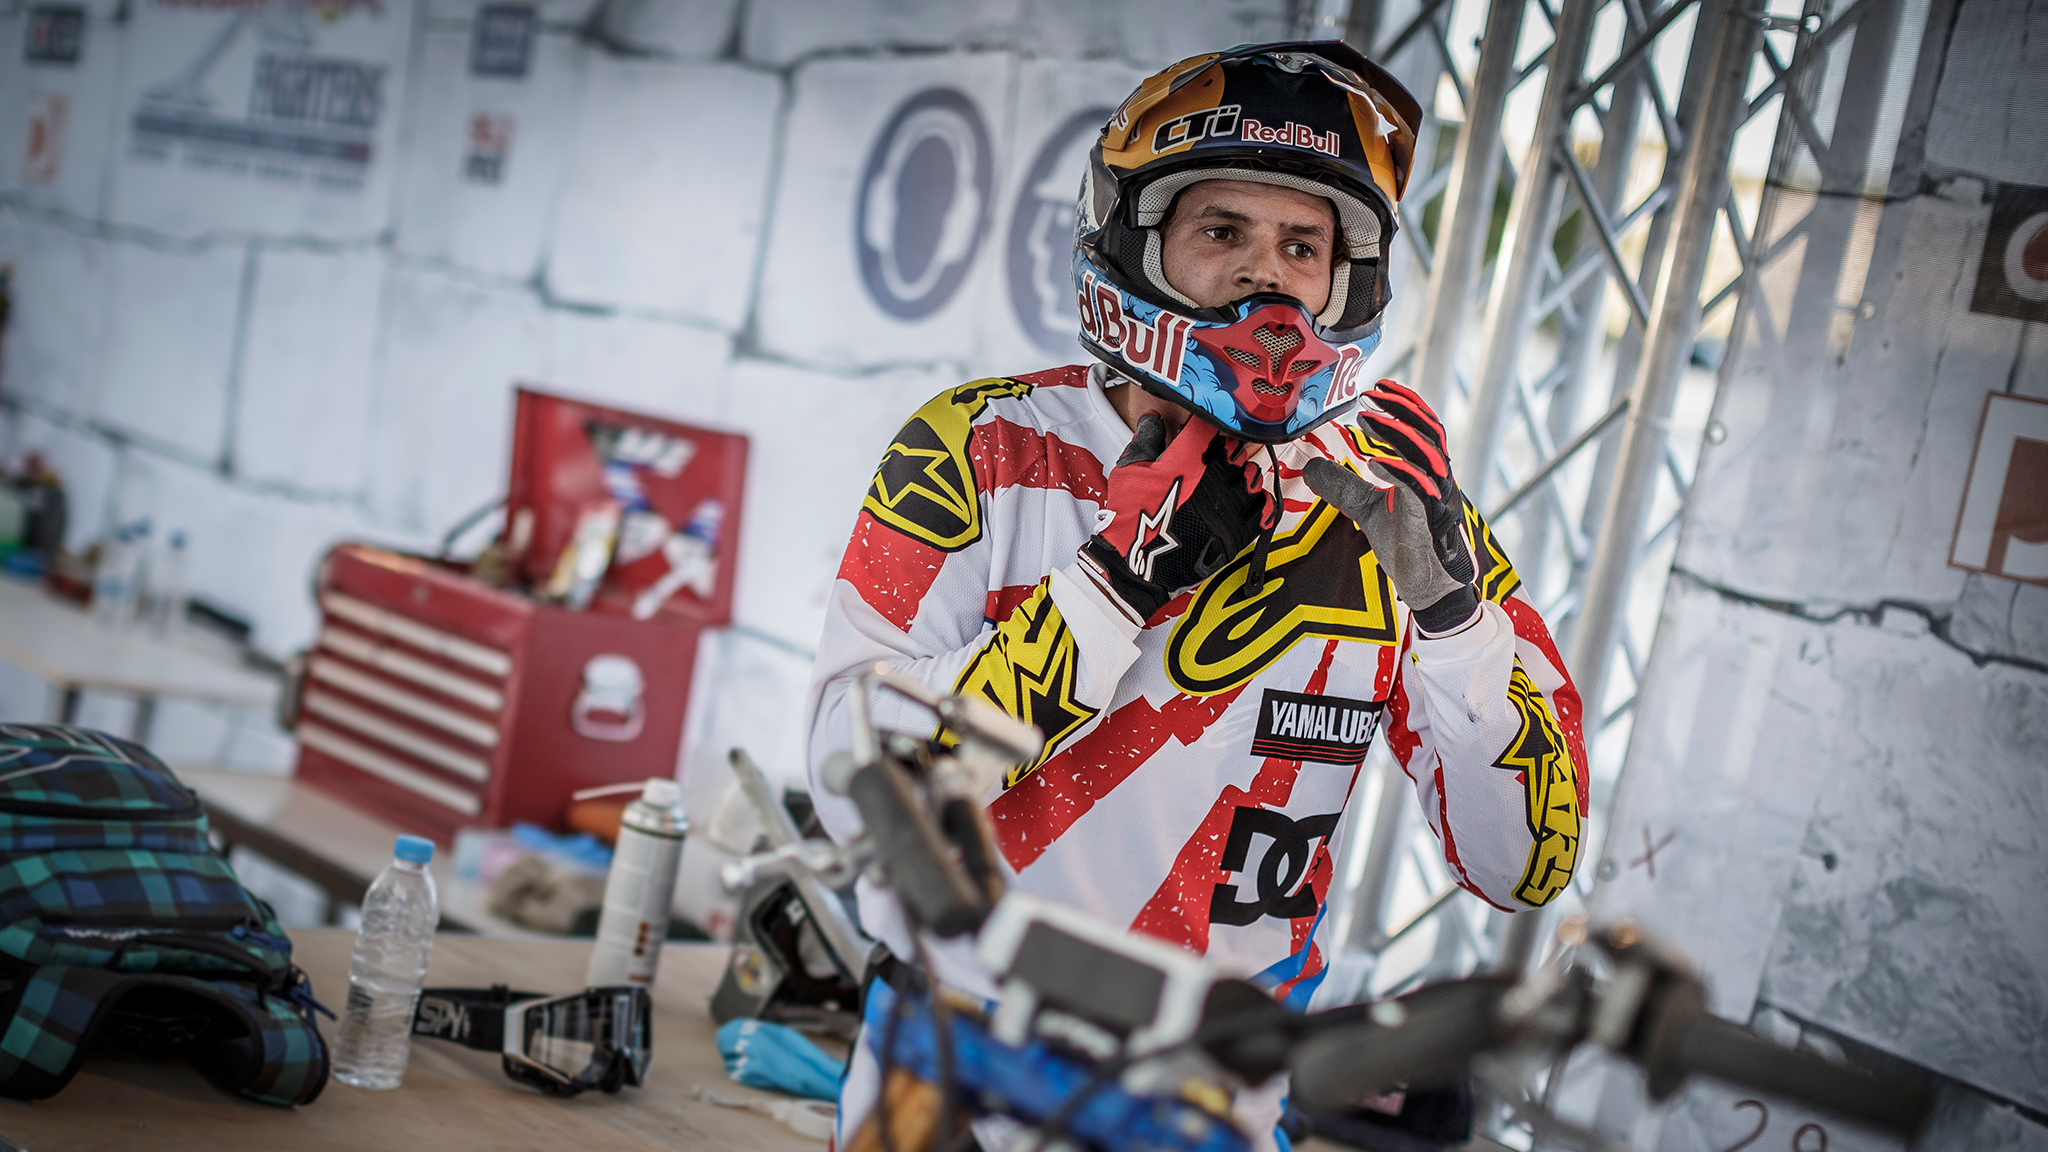 Motocross rider Thomas Pages